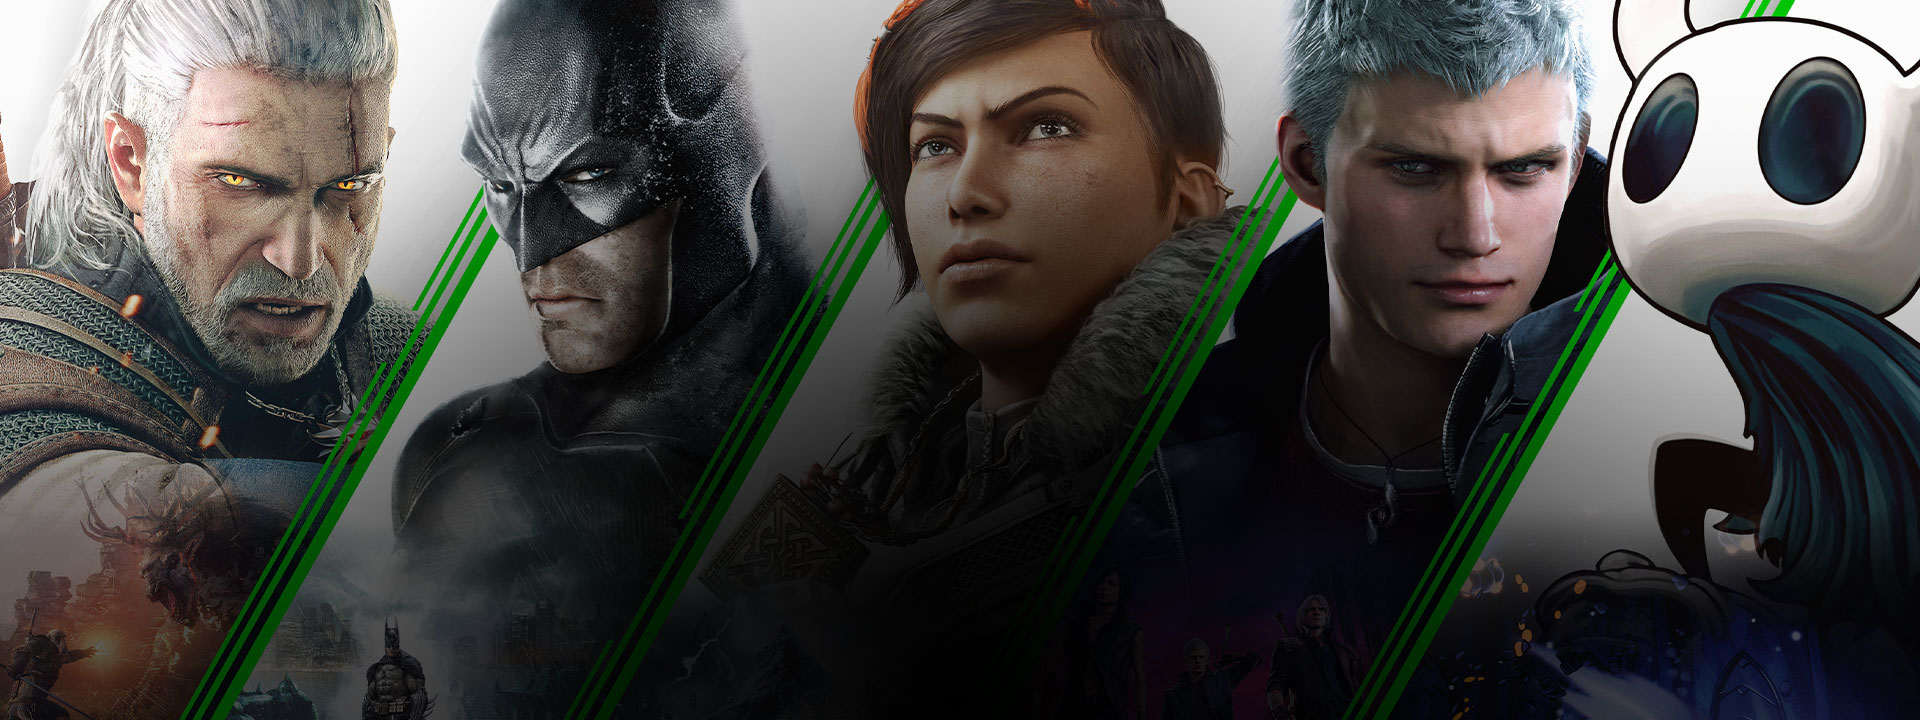 Eine Sammlung von Spielen, die auf Xbox verfügbar sind, einschließlich The Witcher 3: Wild Hunt, Batman (Arkham-Serie), Gears 5, Devil May Cry 5 und Hollow Knight.